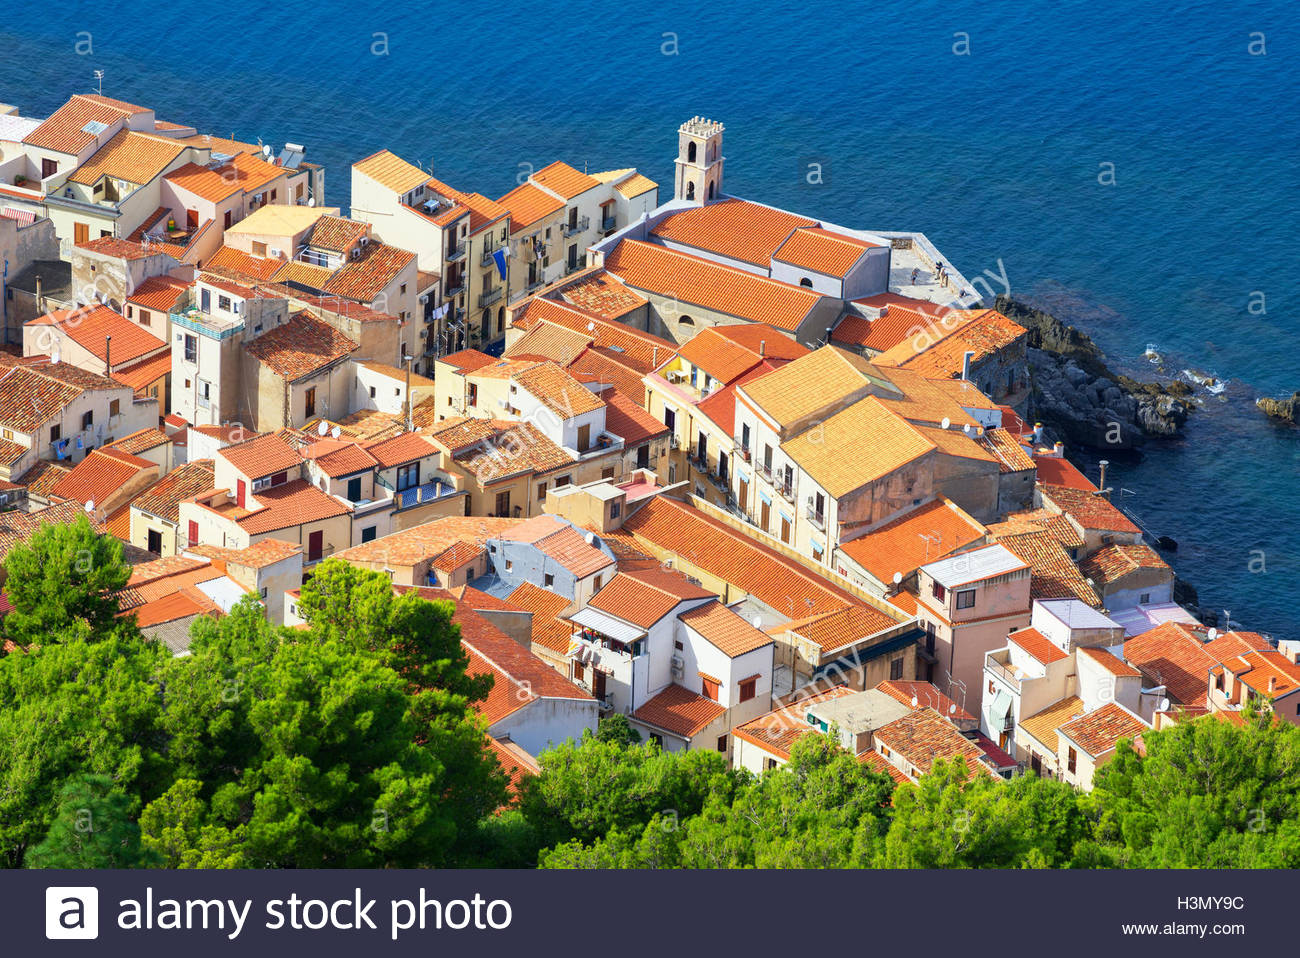 High angle view of Cefalu terracotta rooftops and coast from La Rocca, Sicily, Italy - Stock Image